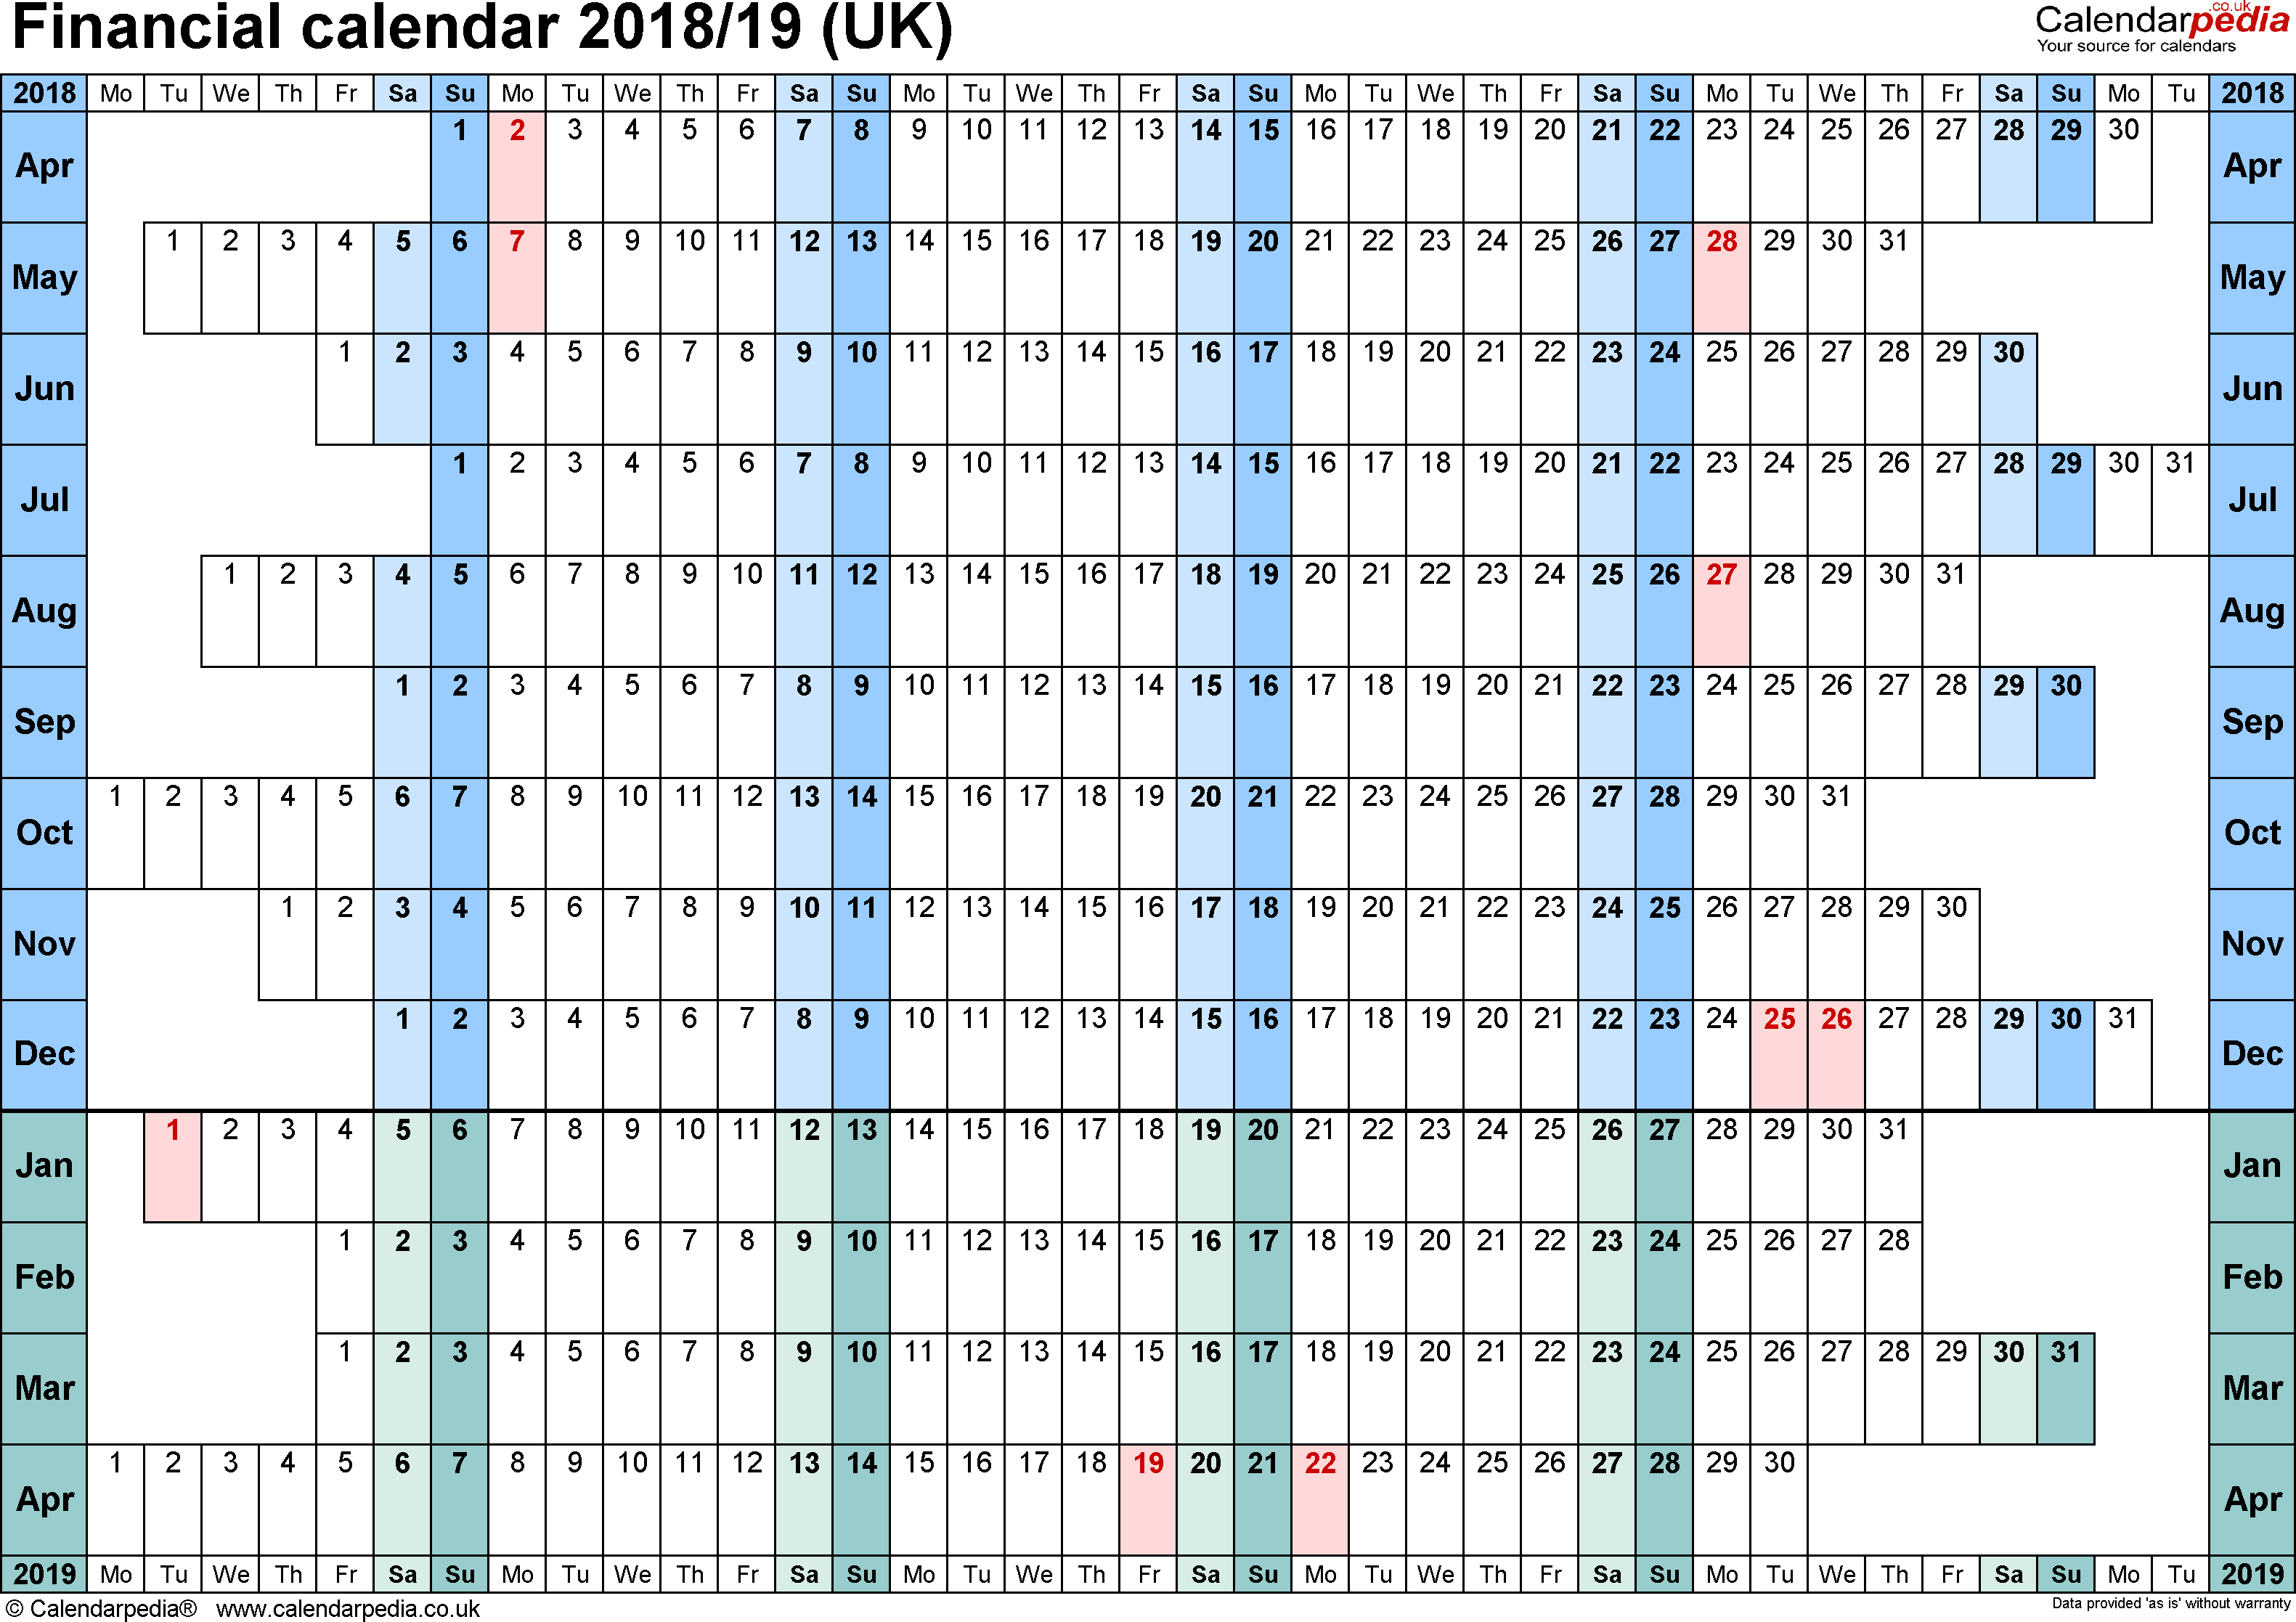 Financial calendars 2018/19 (UK) in PDF format